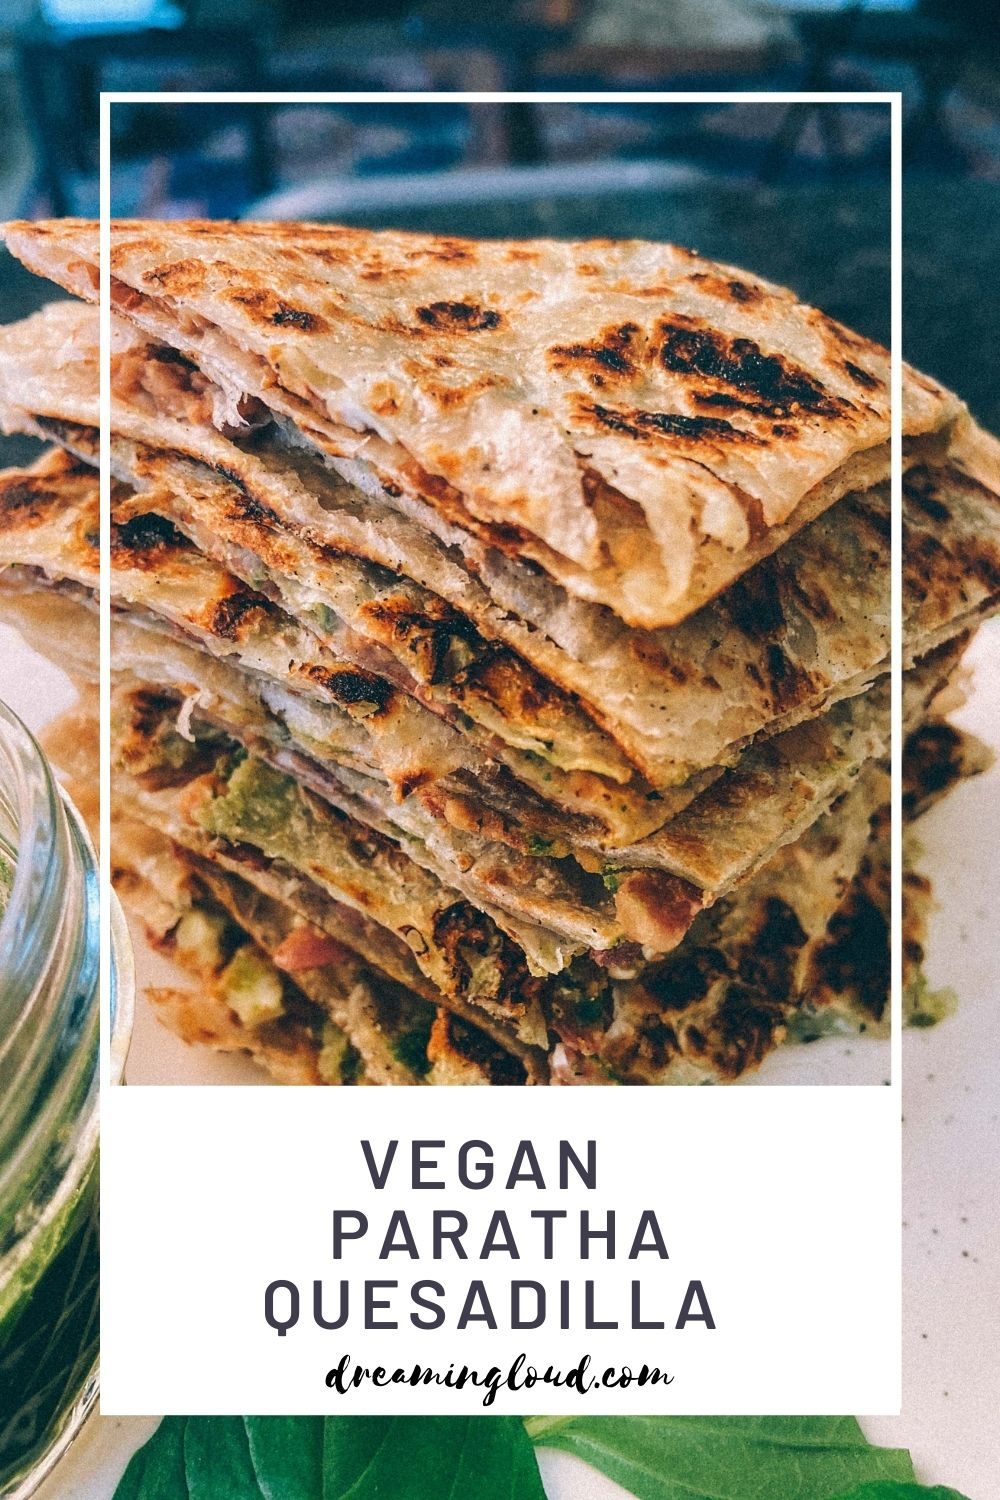 Vegan Paratha Quesadilla | Paratha Quesadilla by popular Maryland Indian food blog, Dreaming Loud: Pinterest image of vegan paratha quesadillas.